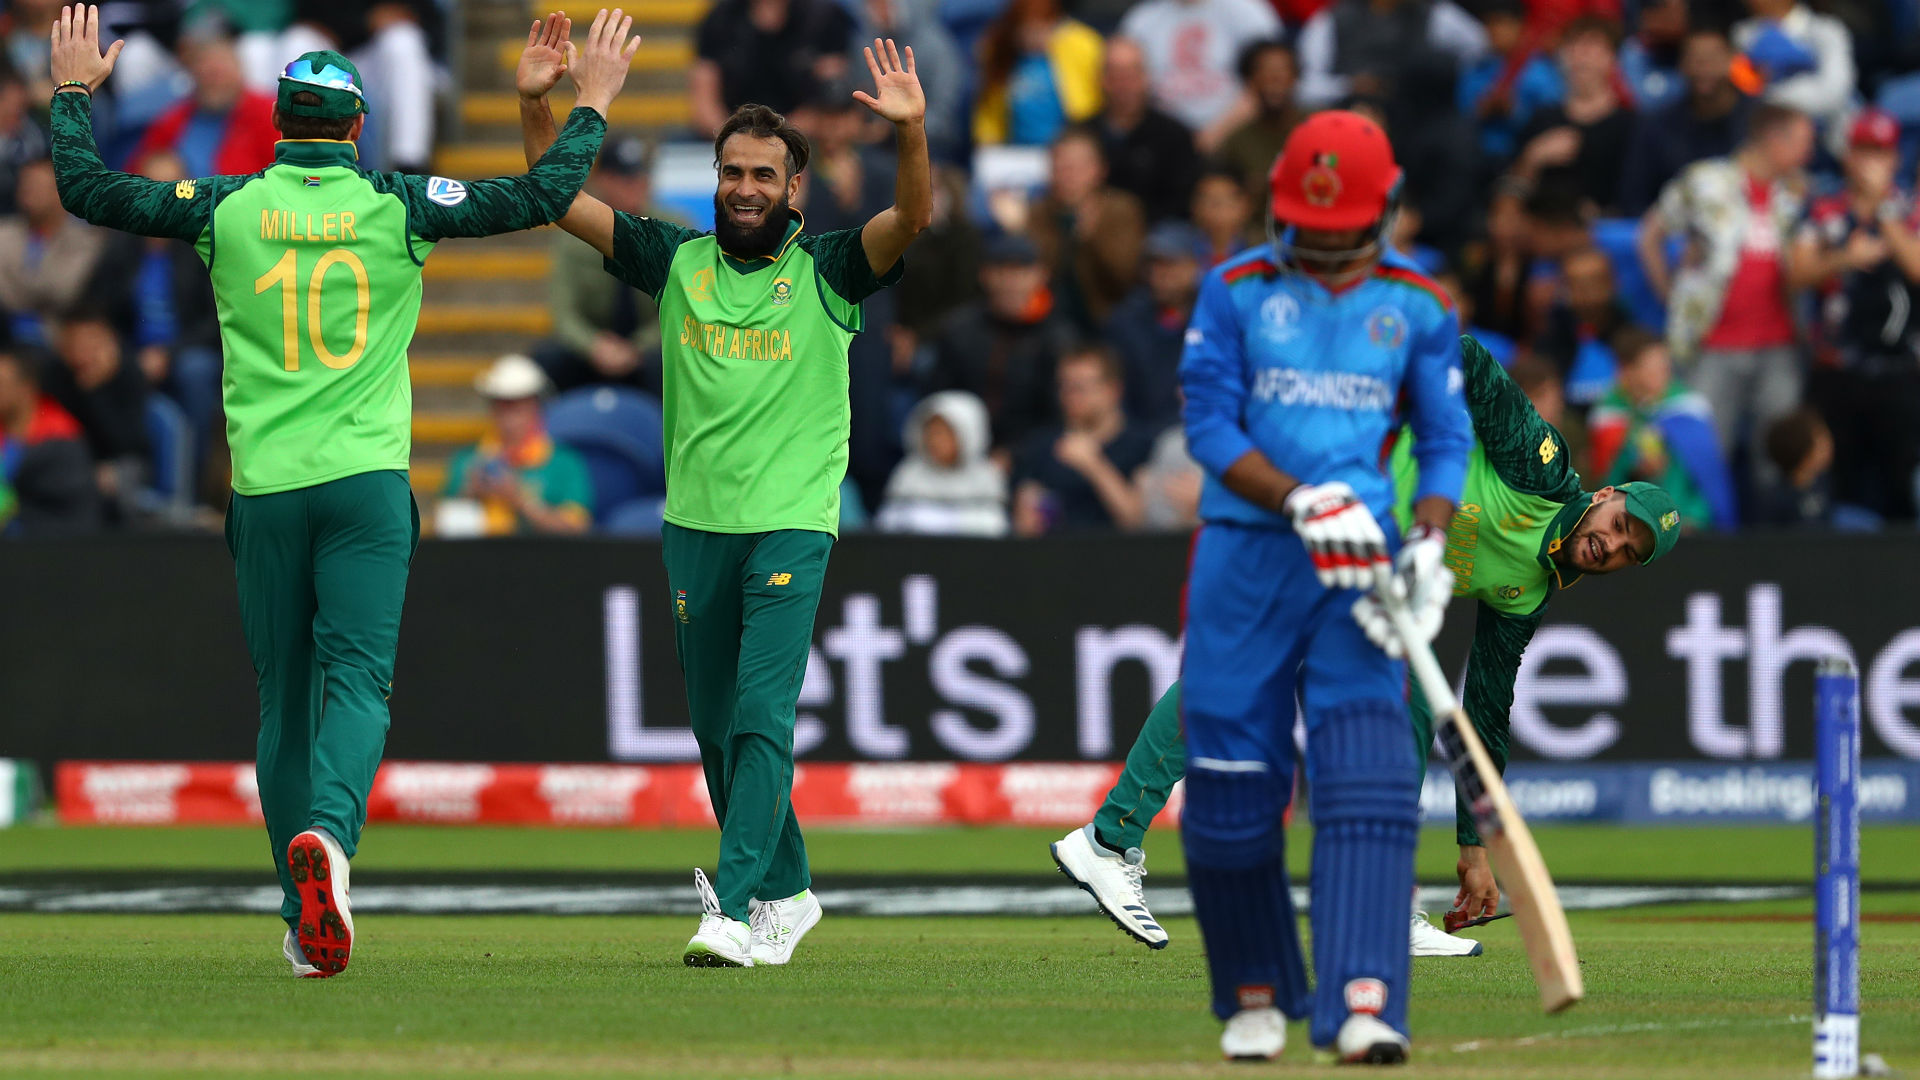 Tahir has single-handedly made South Africa a strong team - Du Plessis